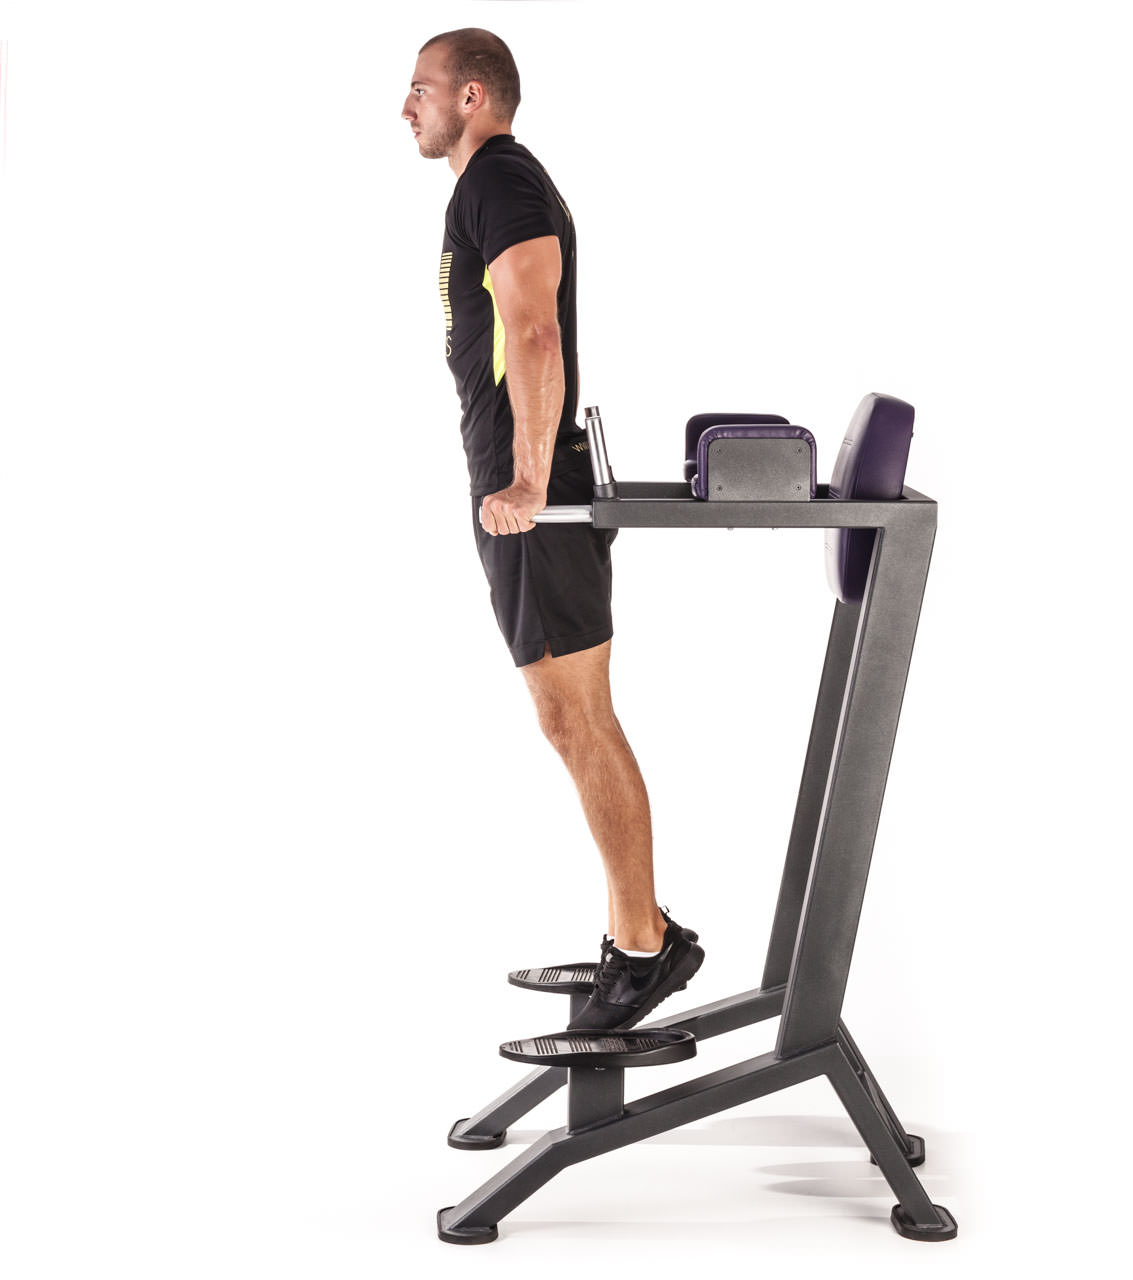 Vertical Bench Leg Raises frame #1